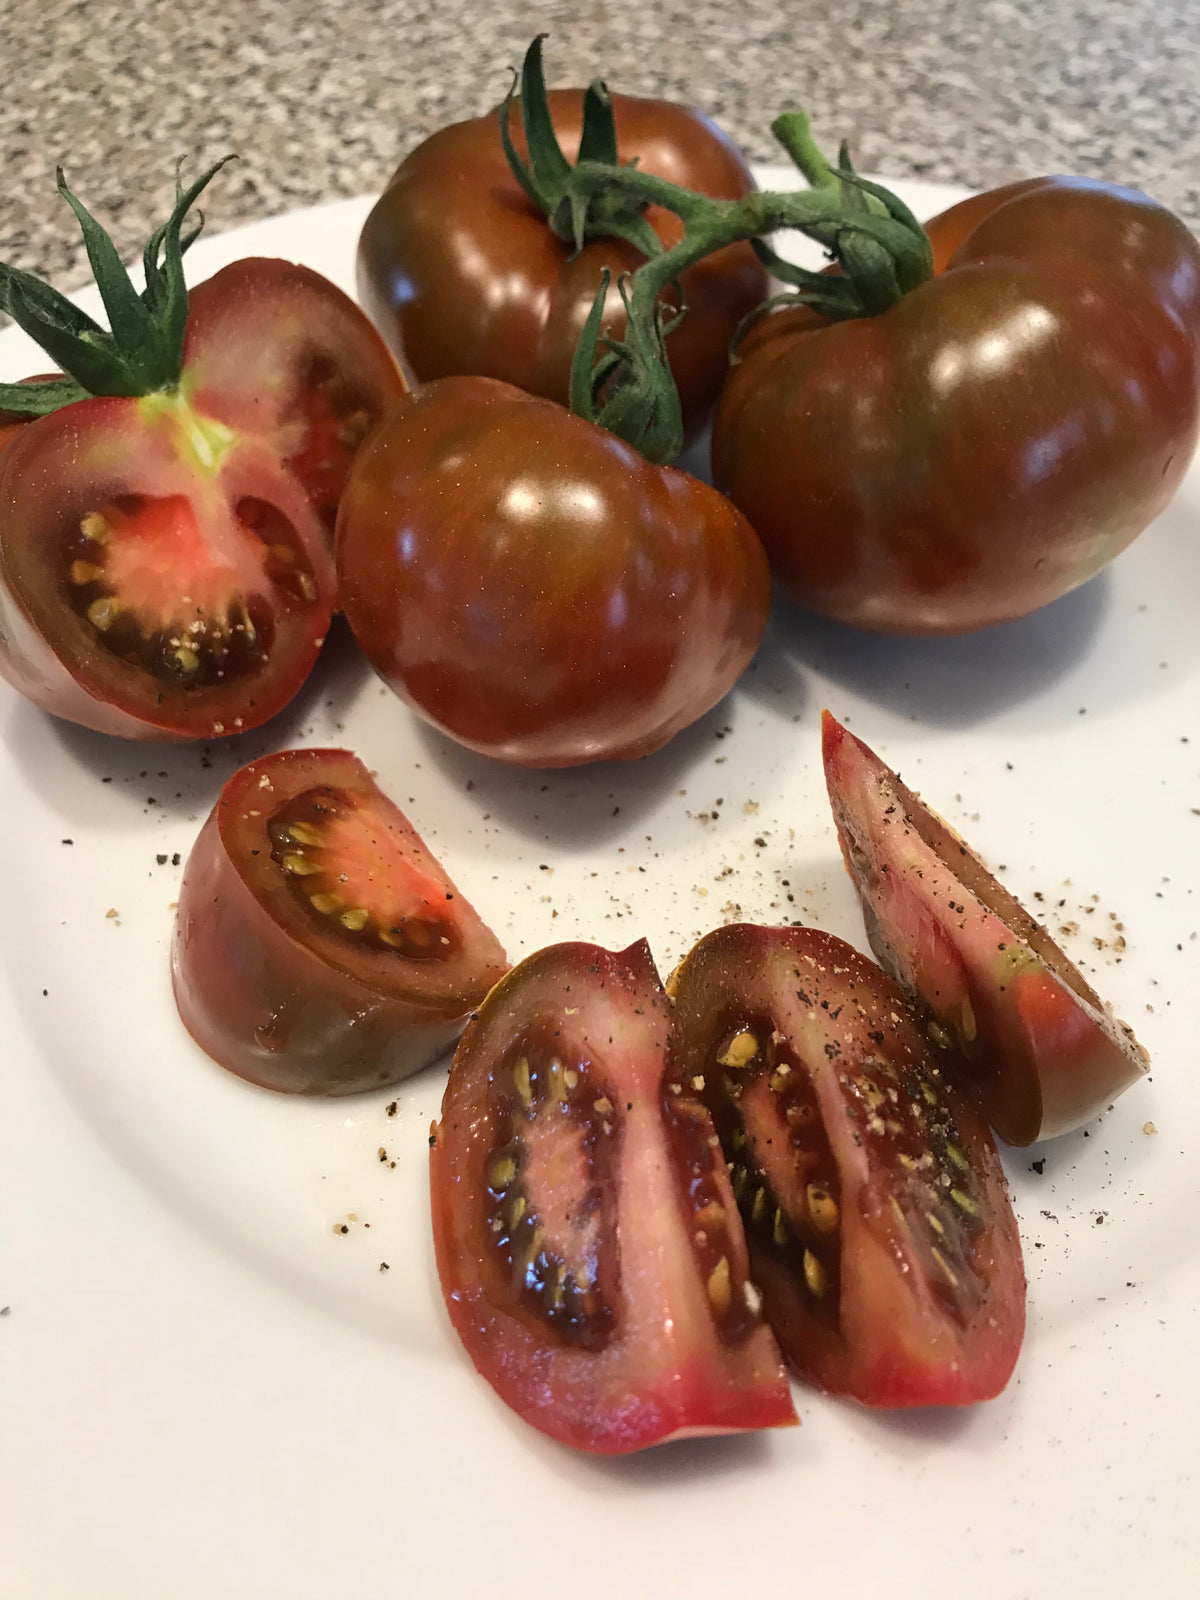 Black Velvet tomatoes, heirloom variety, 1.5 lbs (680 grams)